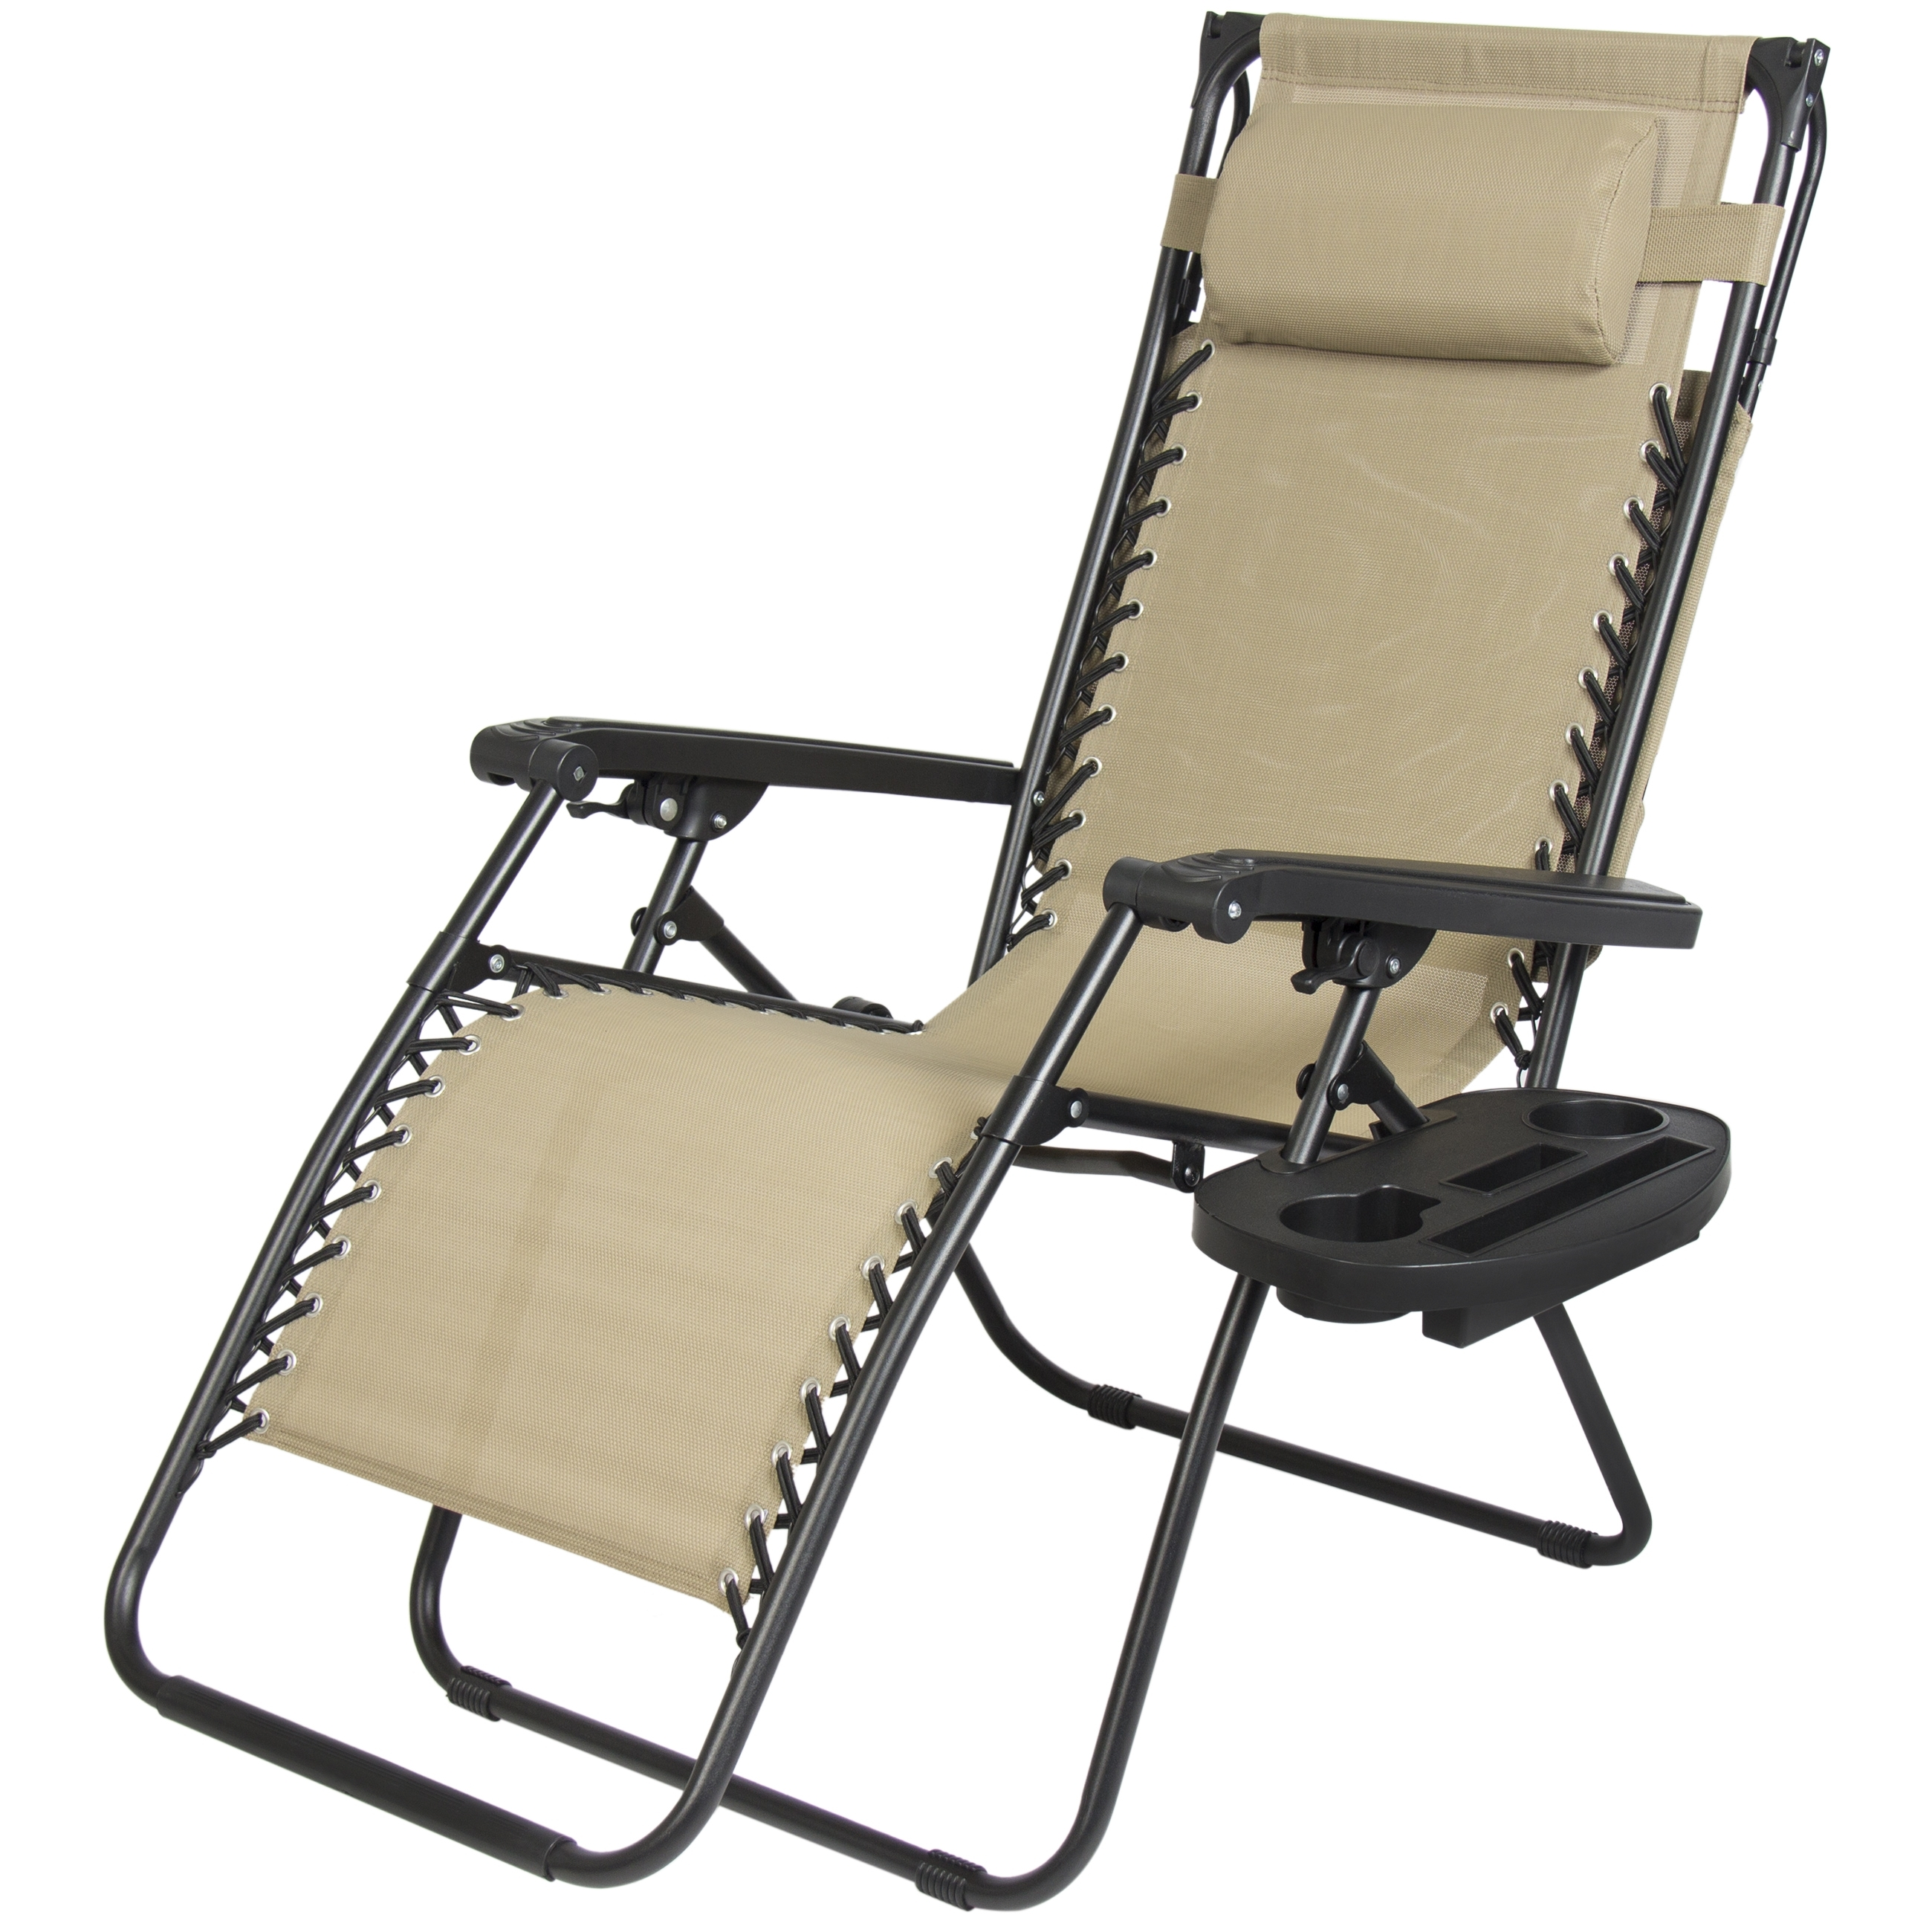 Well Known Zero Gravity Lounge Chairs With Canopy • Lounge Chairs Ideas With Zero Gravity Chaise Lounges (View 10 of 15)